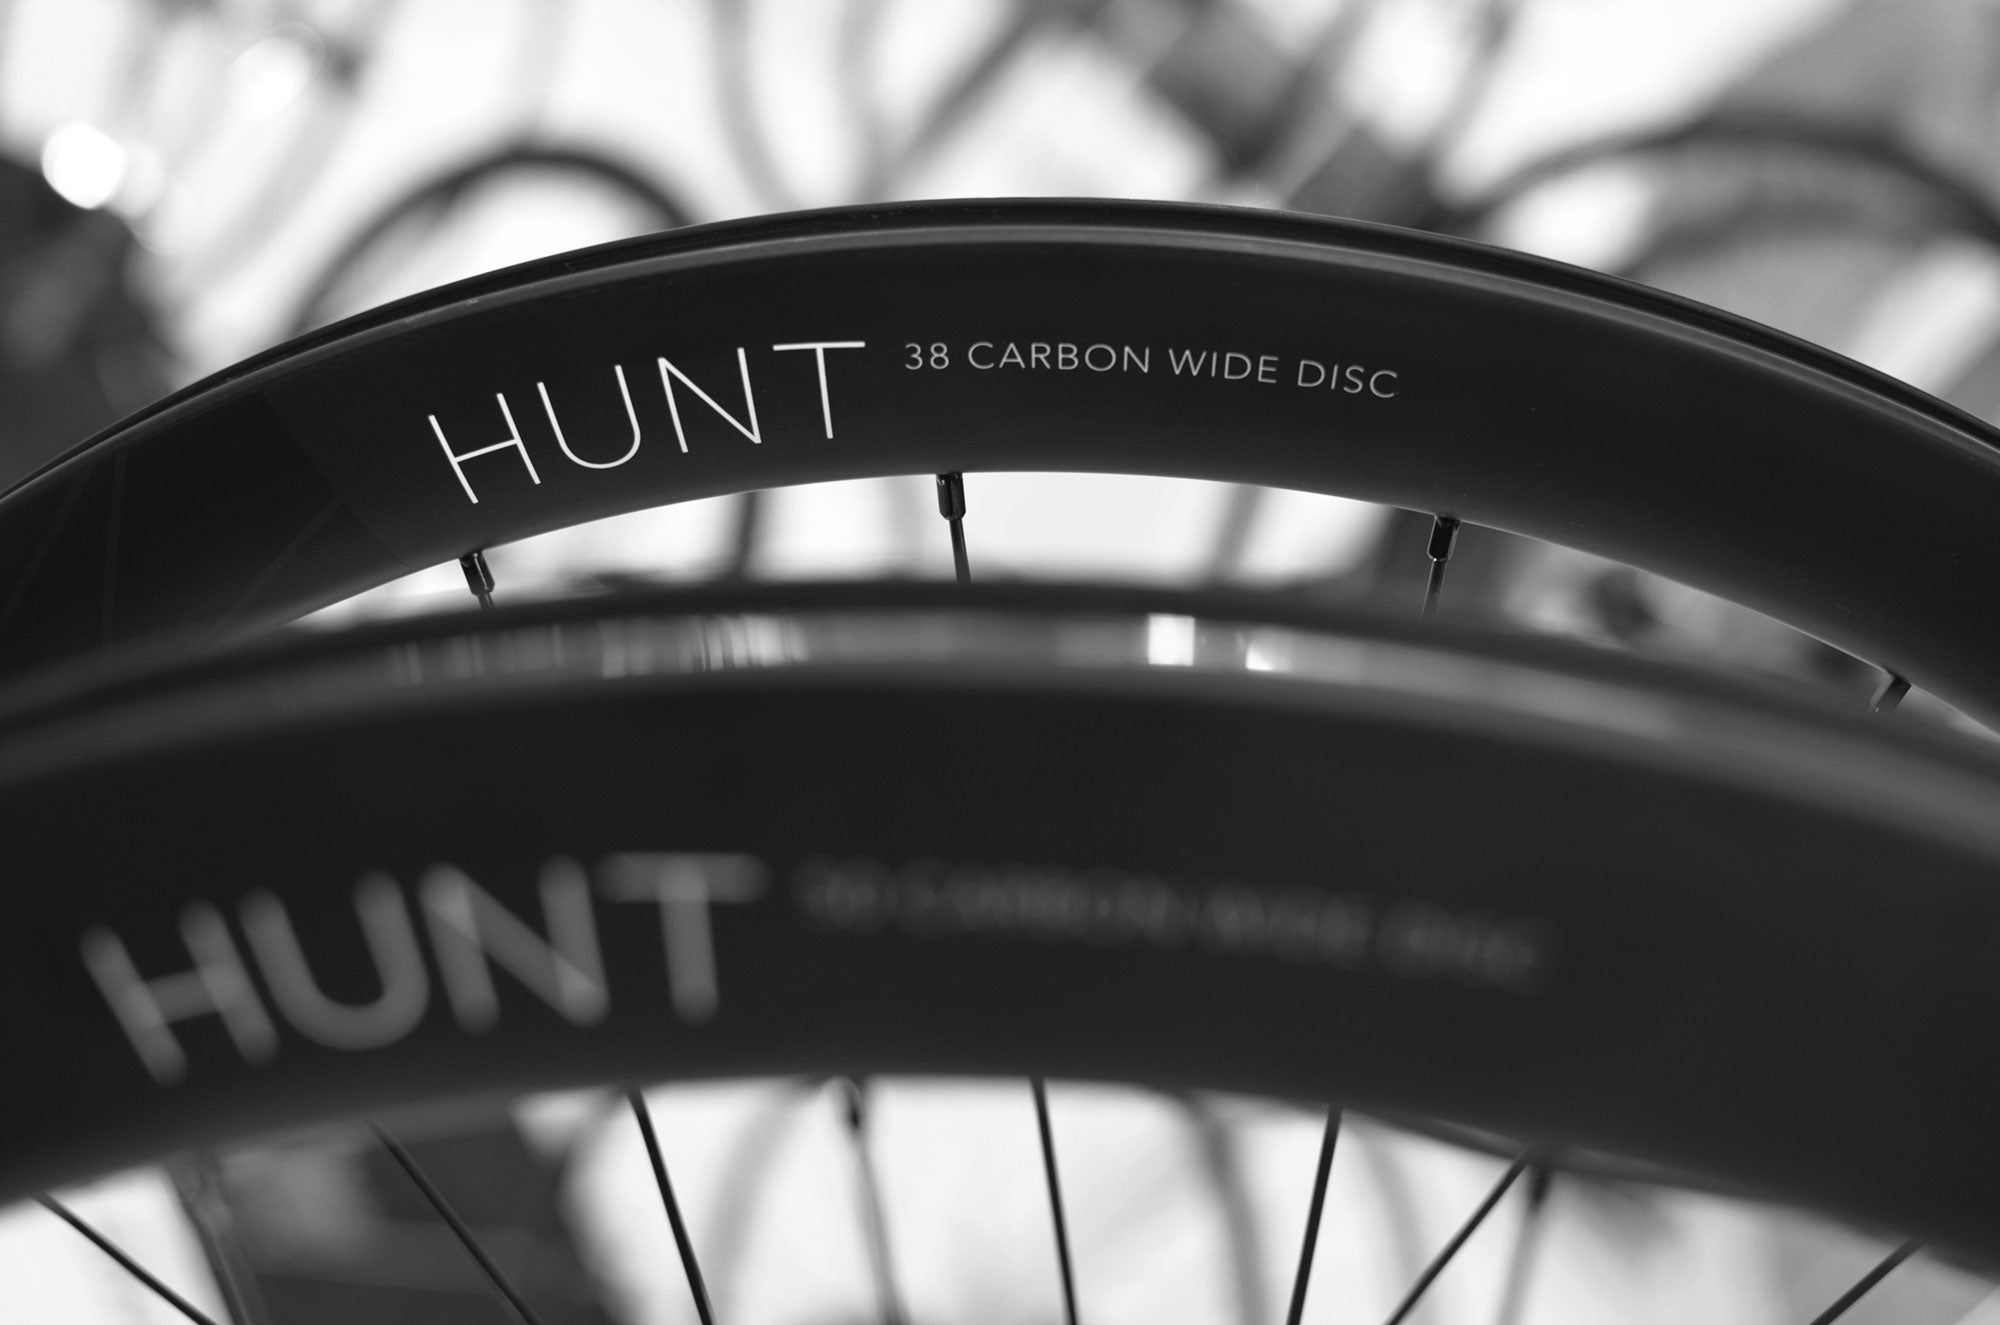 Hunt 38 Carbon Wide Disc Rim